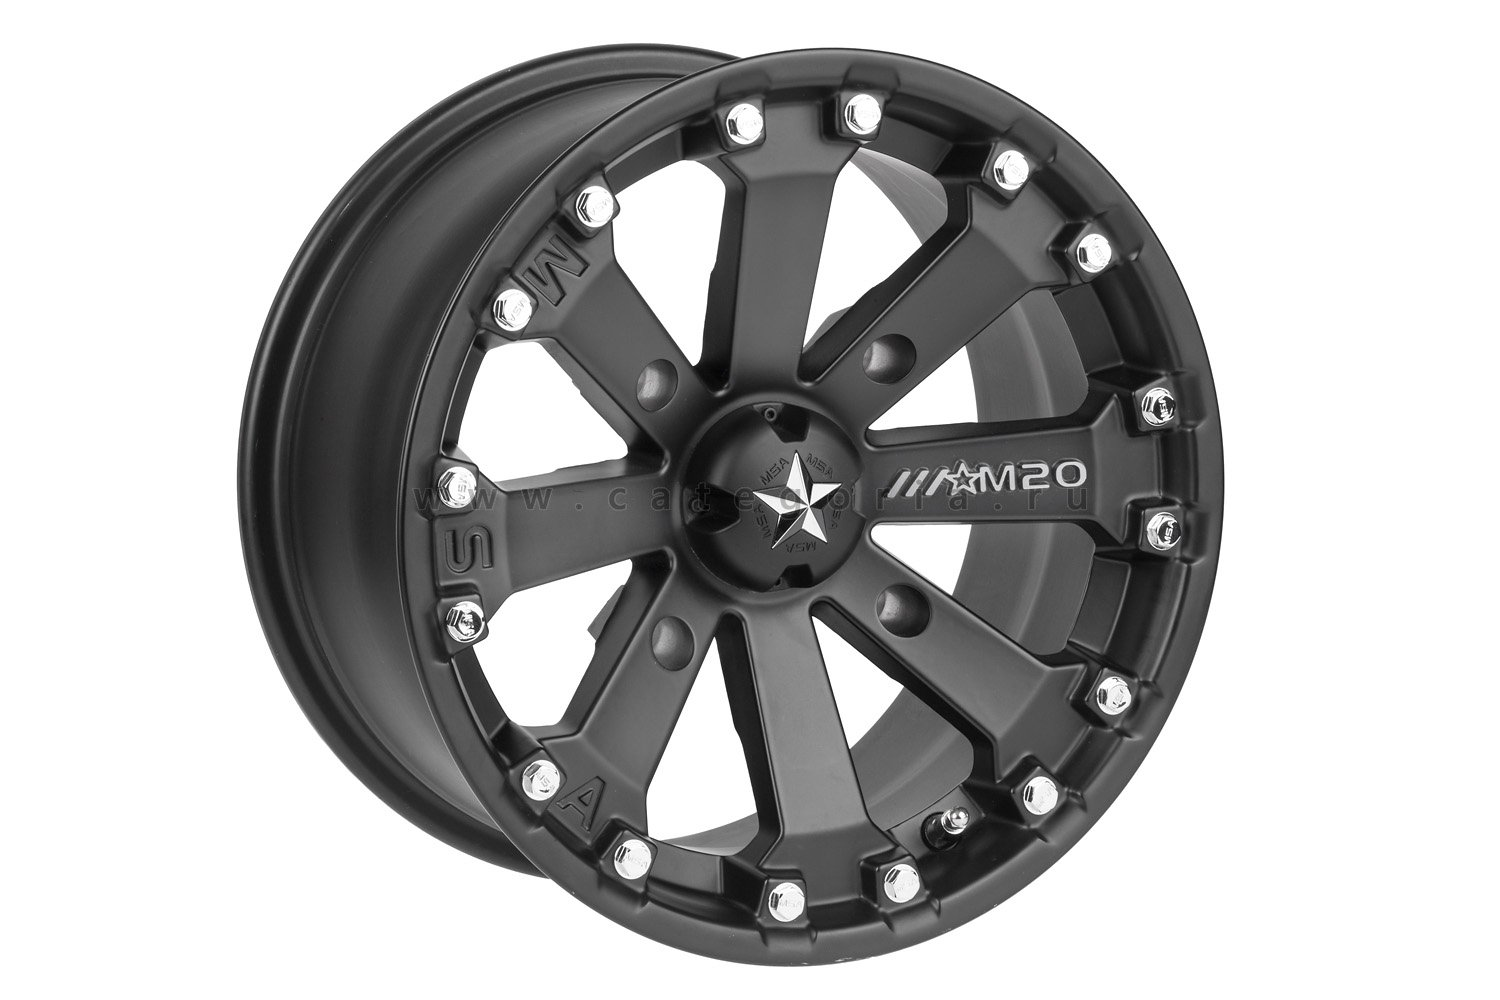 MSA M20 R14x7, 4x110, +0mm Kore Black - диск колесный